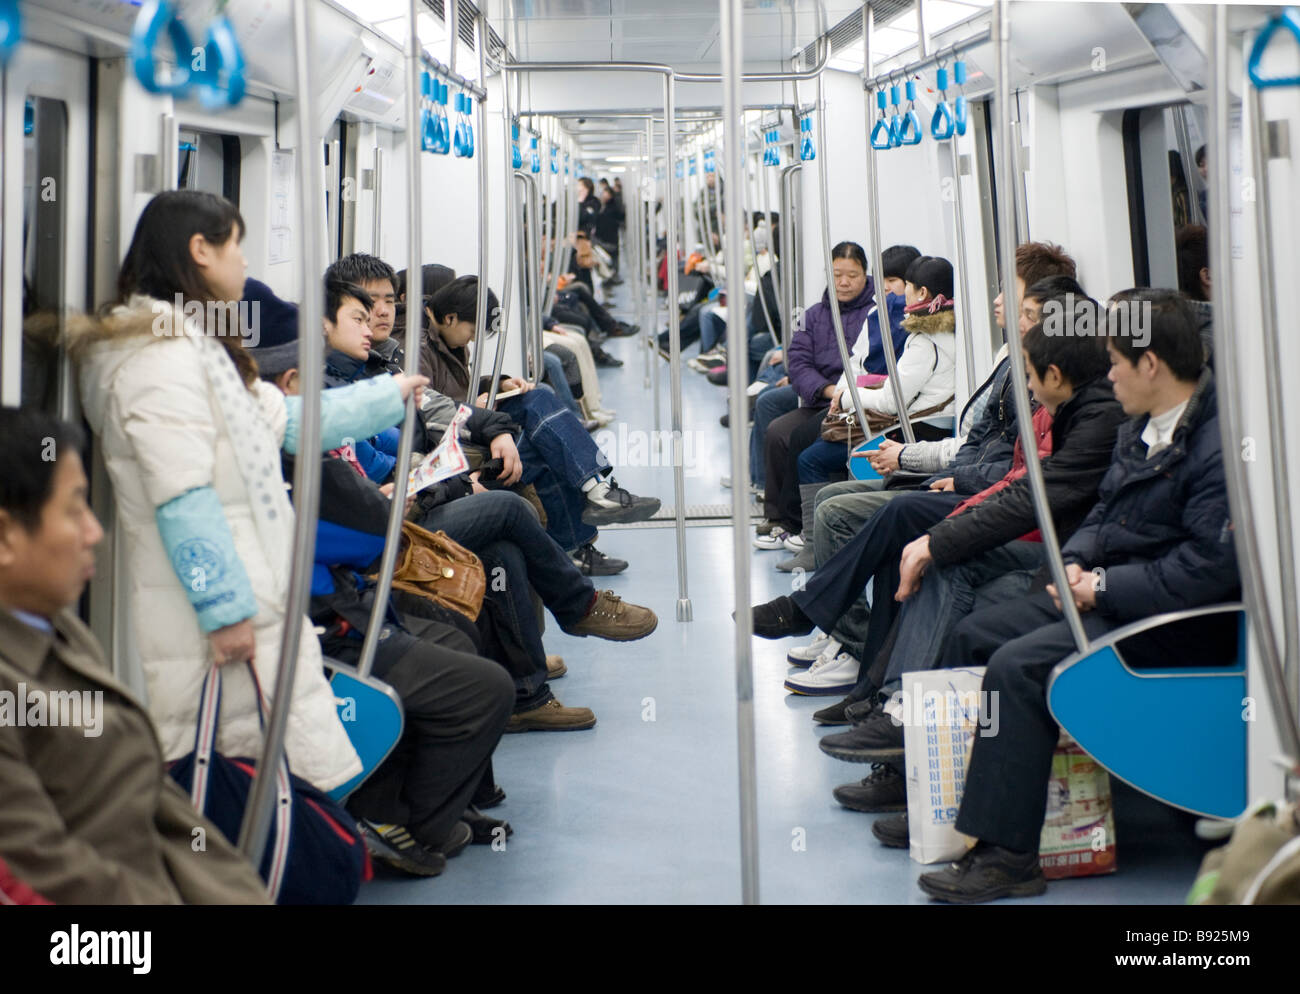 Interior of new subway carriage on Beijing metro in China - Stock Image